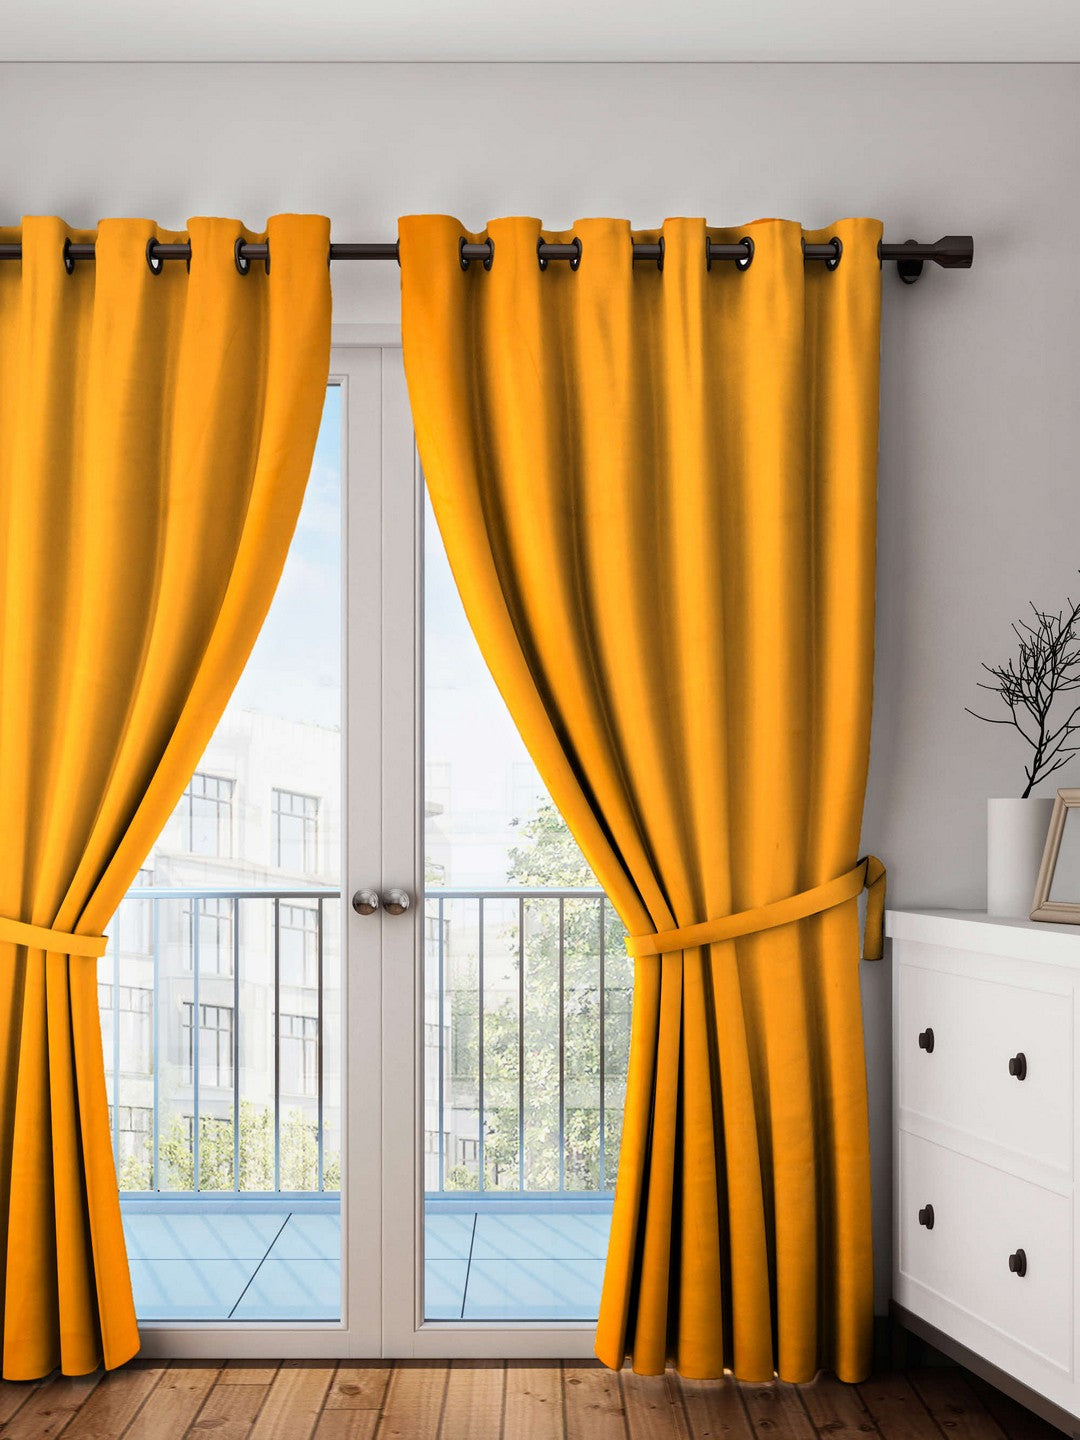 Lushomes Sun Orange Plain Cotton Curtains With 8 Eyelets for Long Door